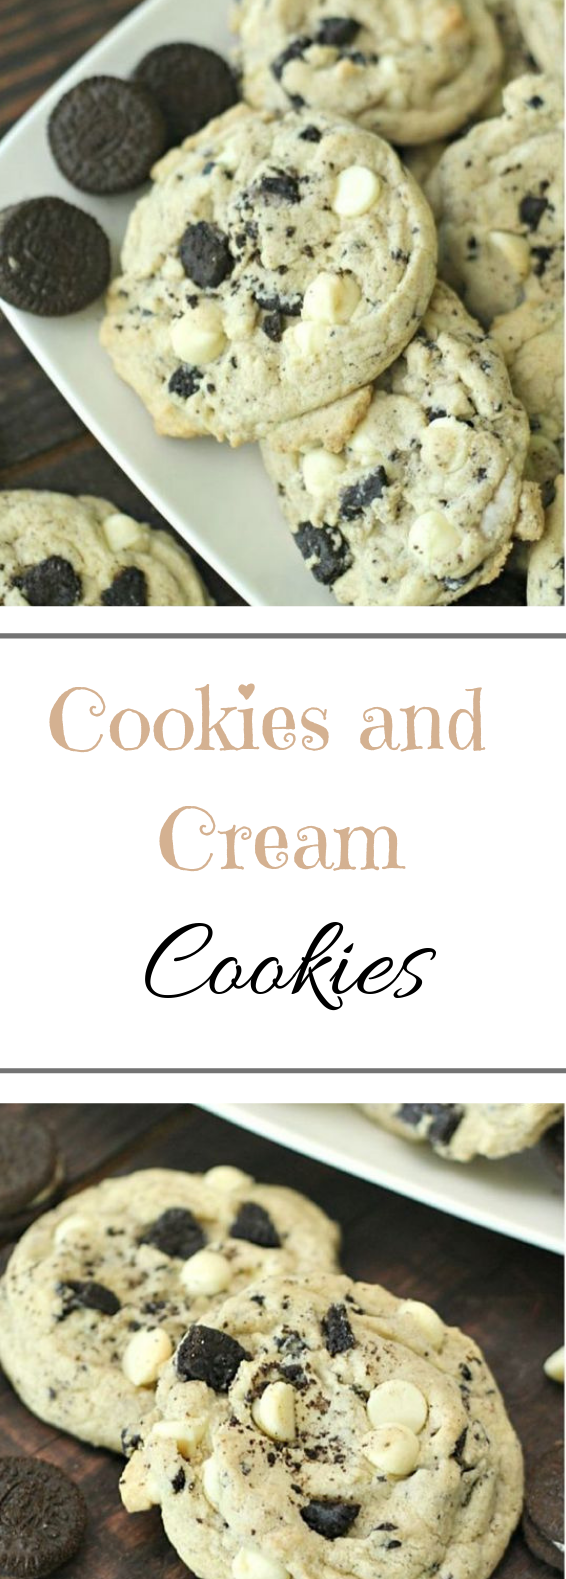 Cookies and Cream Cookies #dessert #cookies